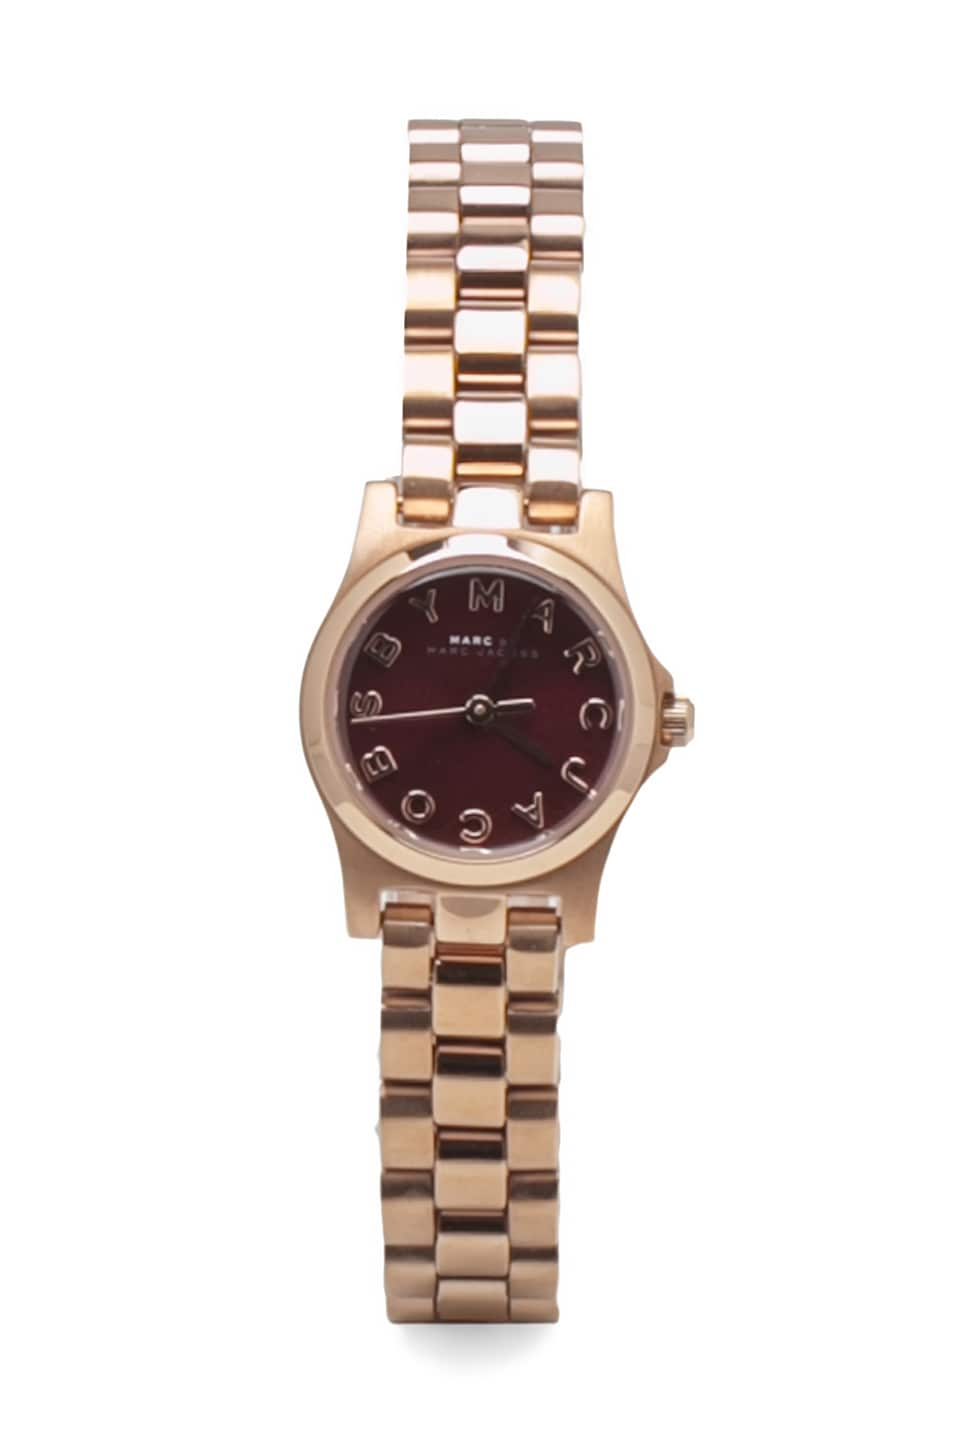 Marc by Marc Jacobs Henry Dinky Watch in Oxblood/Rosegold